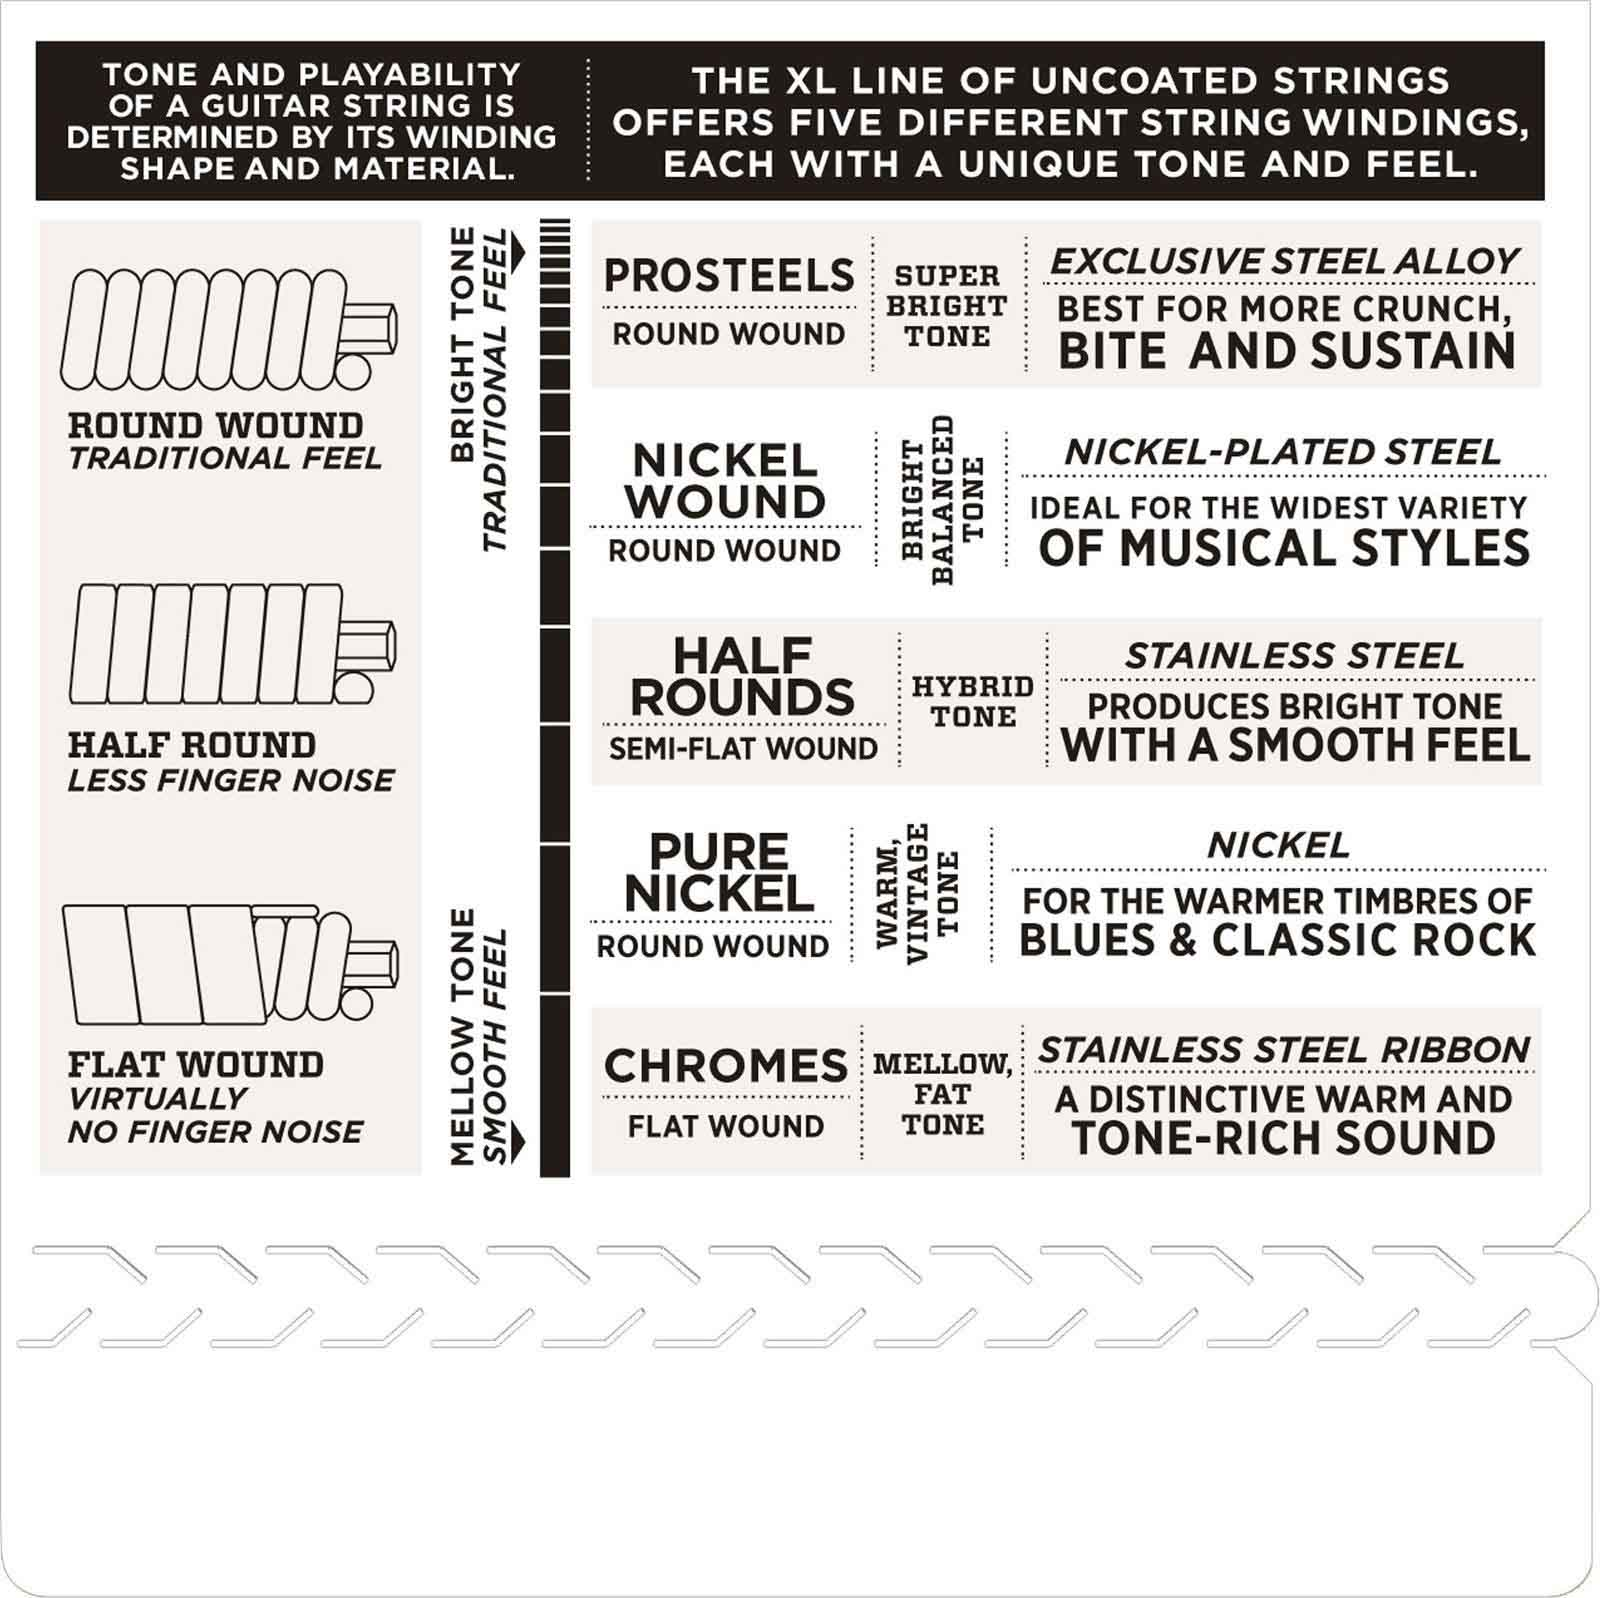 EXL110BT NICKEL WOUND ELECTRIC GUITAR STRINGS BALANCED TENSION REGULAR LIGHT 10-46